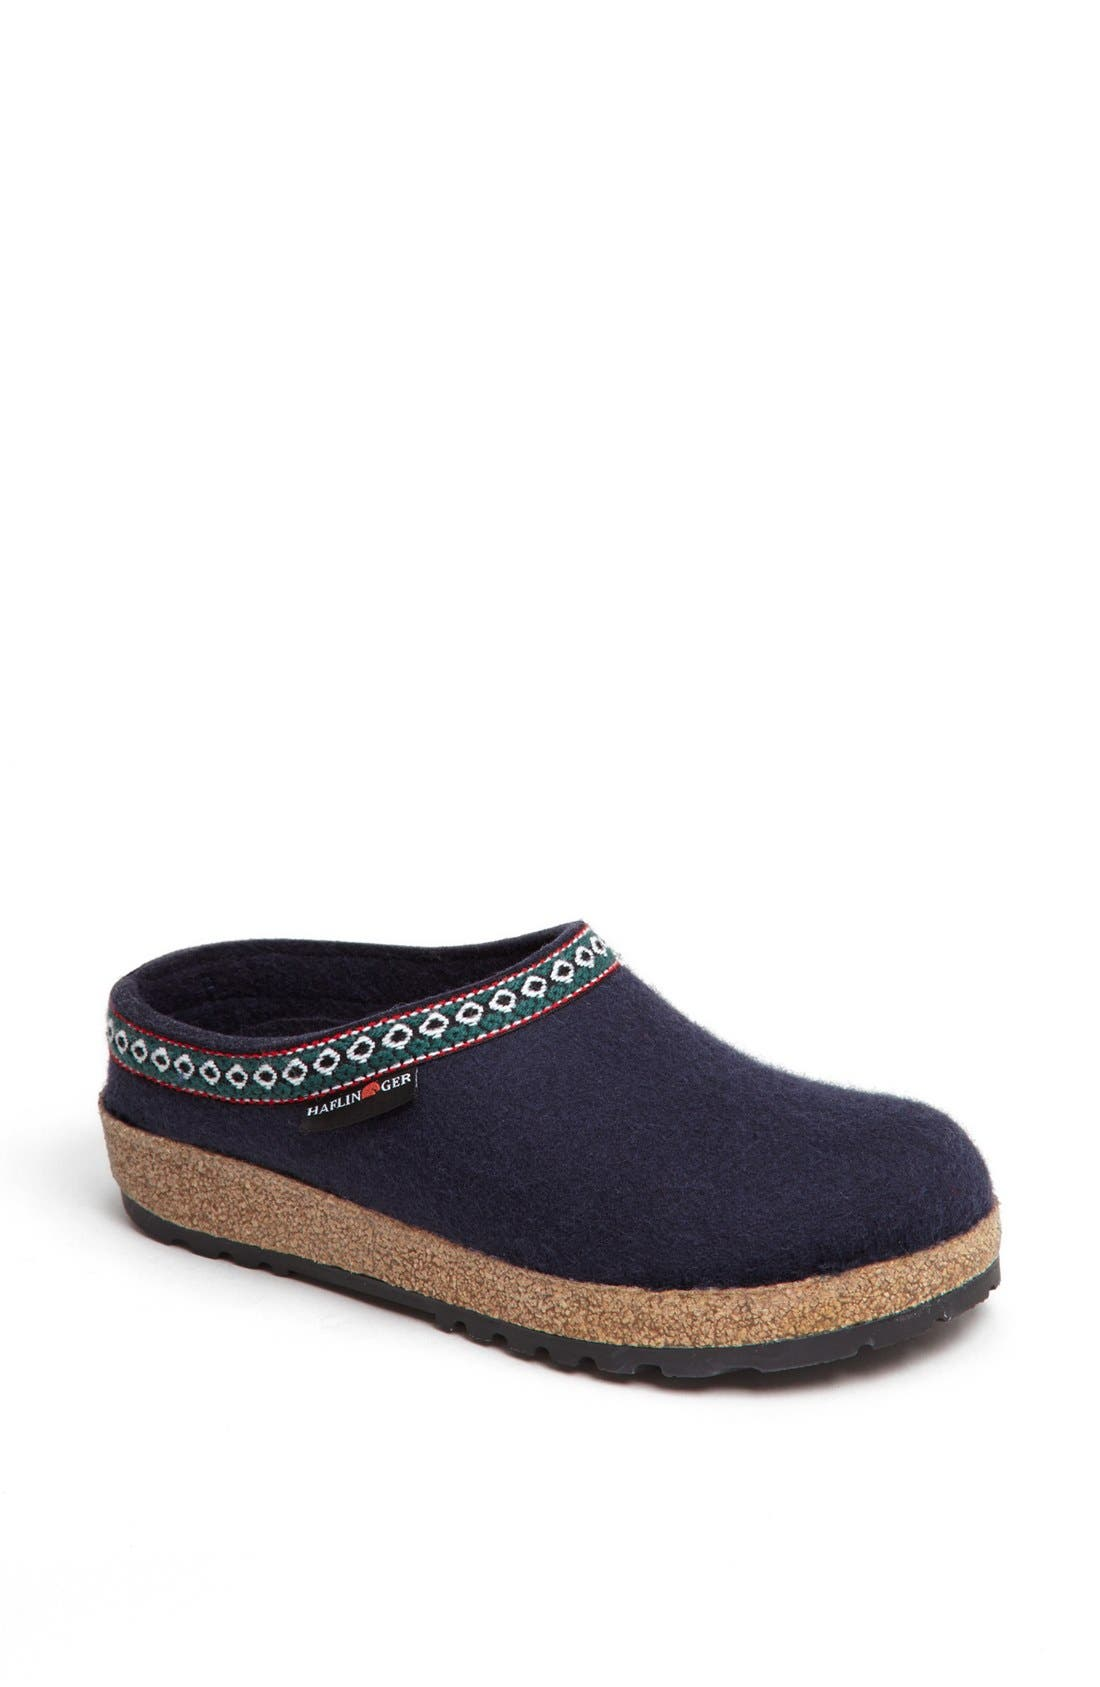 Main Image - Haflinger 'Classic Grizzly' Slipper